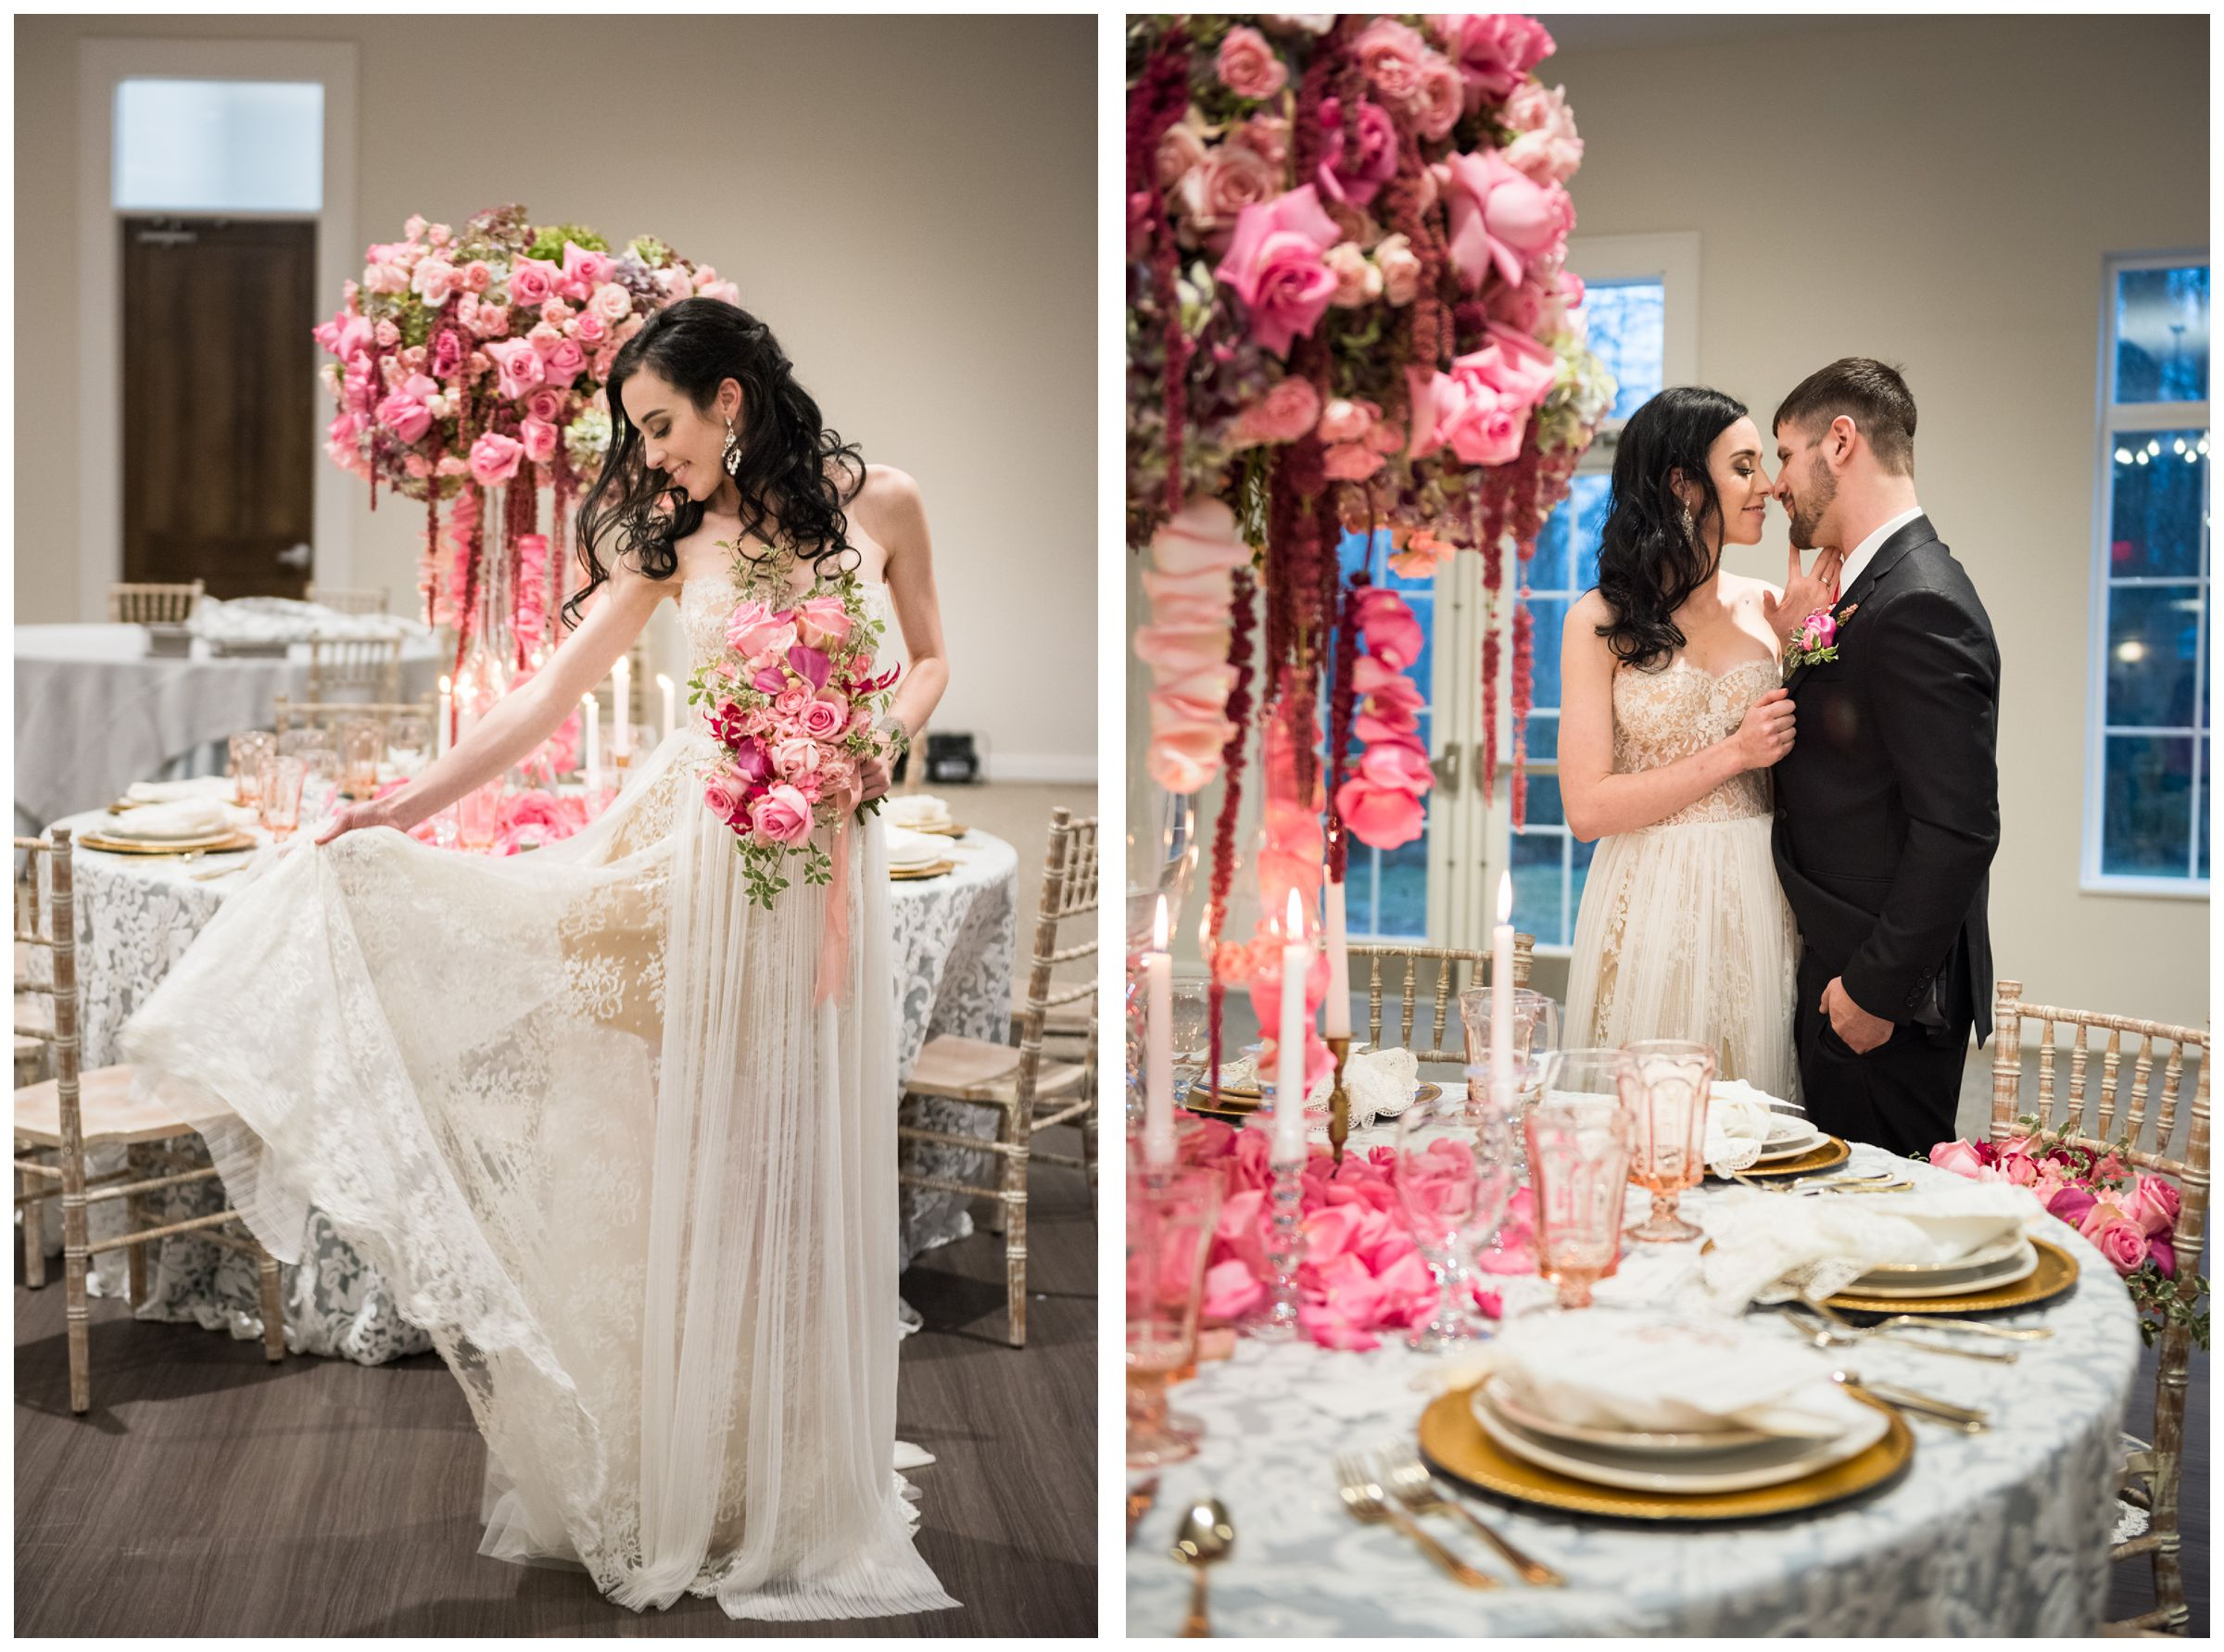 styled wedding shoot at The Estate at New Albany near Columbus Ohio